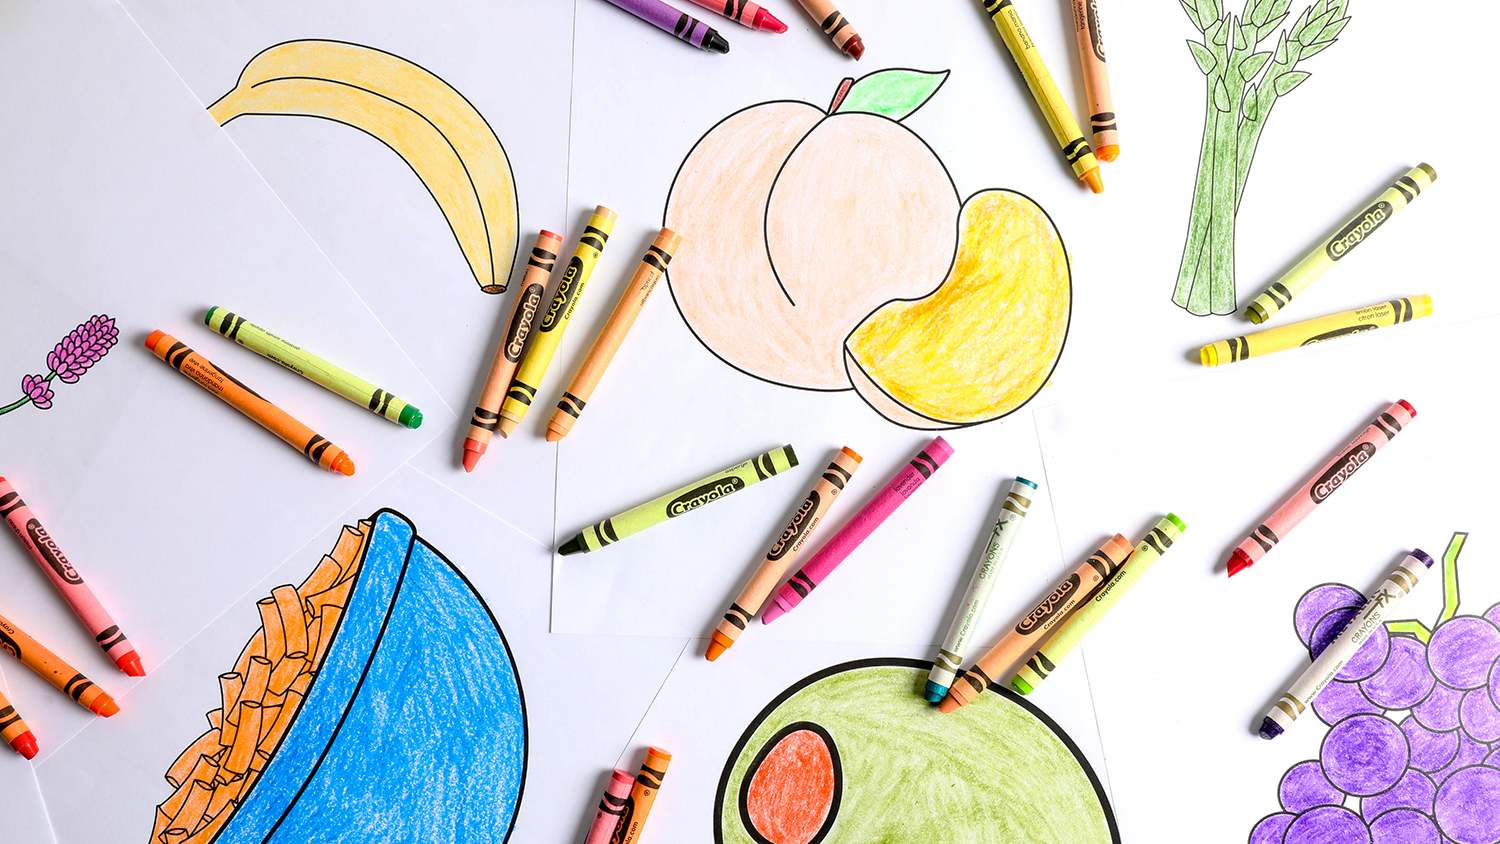 We Compared Crayola Crayon Food Colors to Actual Food